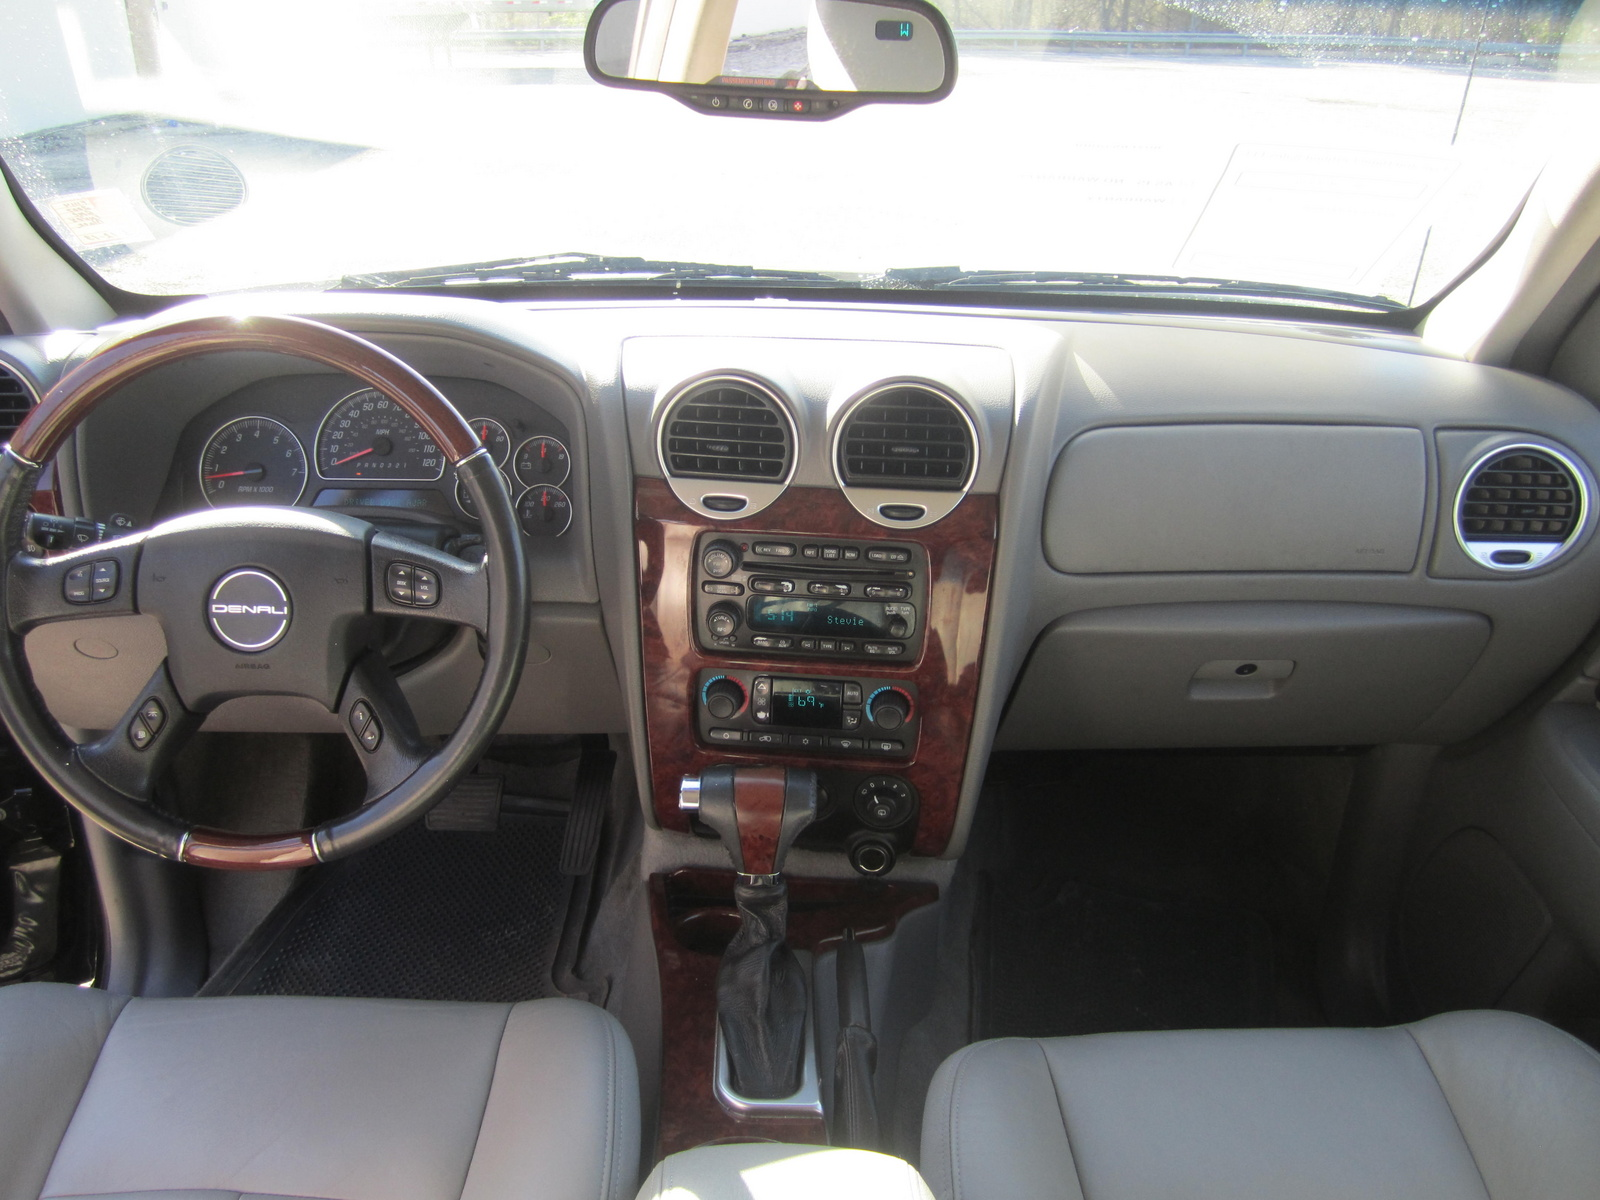 2007 gmc envoy interior. Black Bedroom Furniture Sets. Home Design Ideas